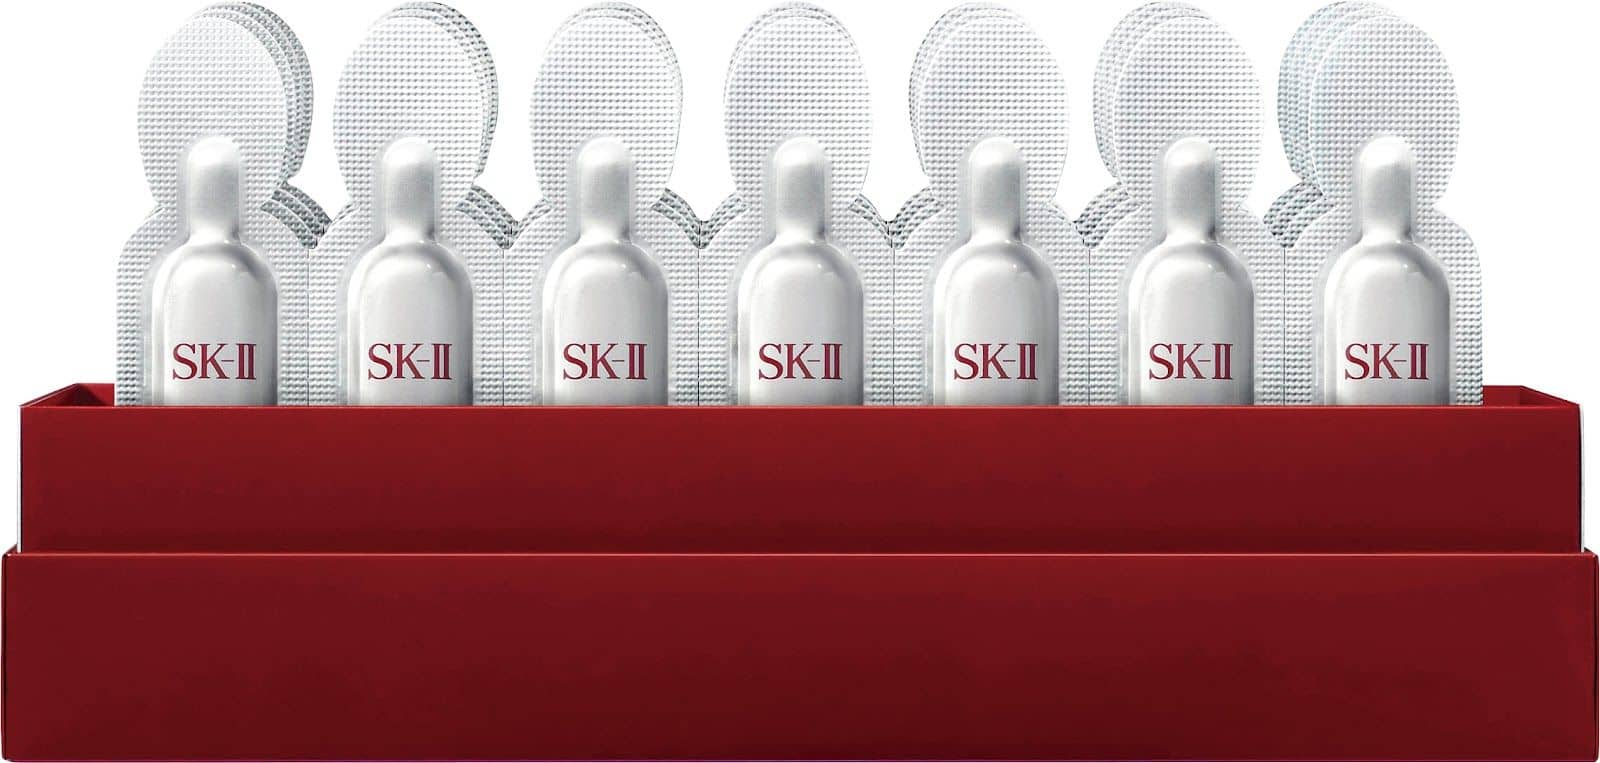 Tinh chất trị nám SK-II Whitening Spots Specialist Concentrate